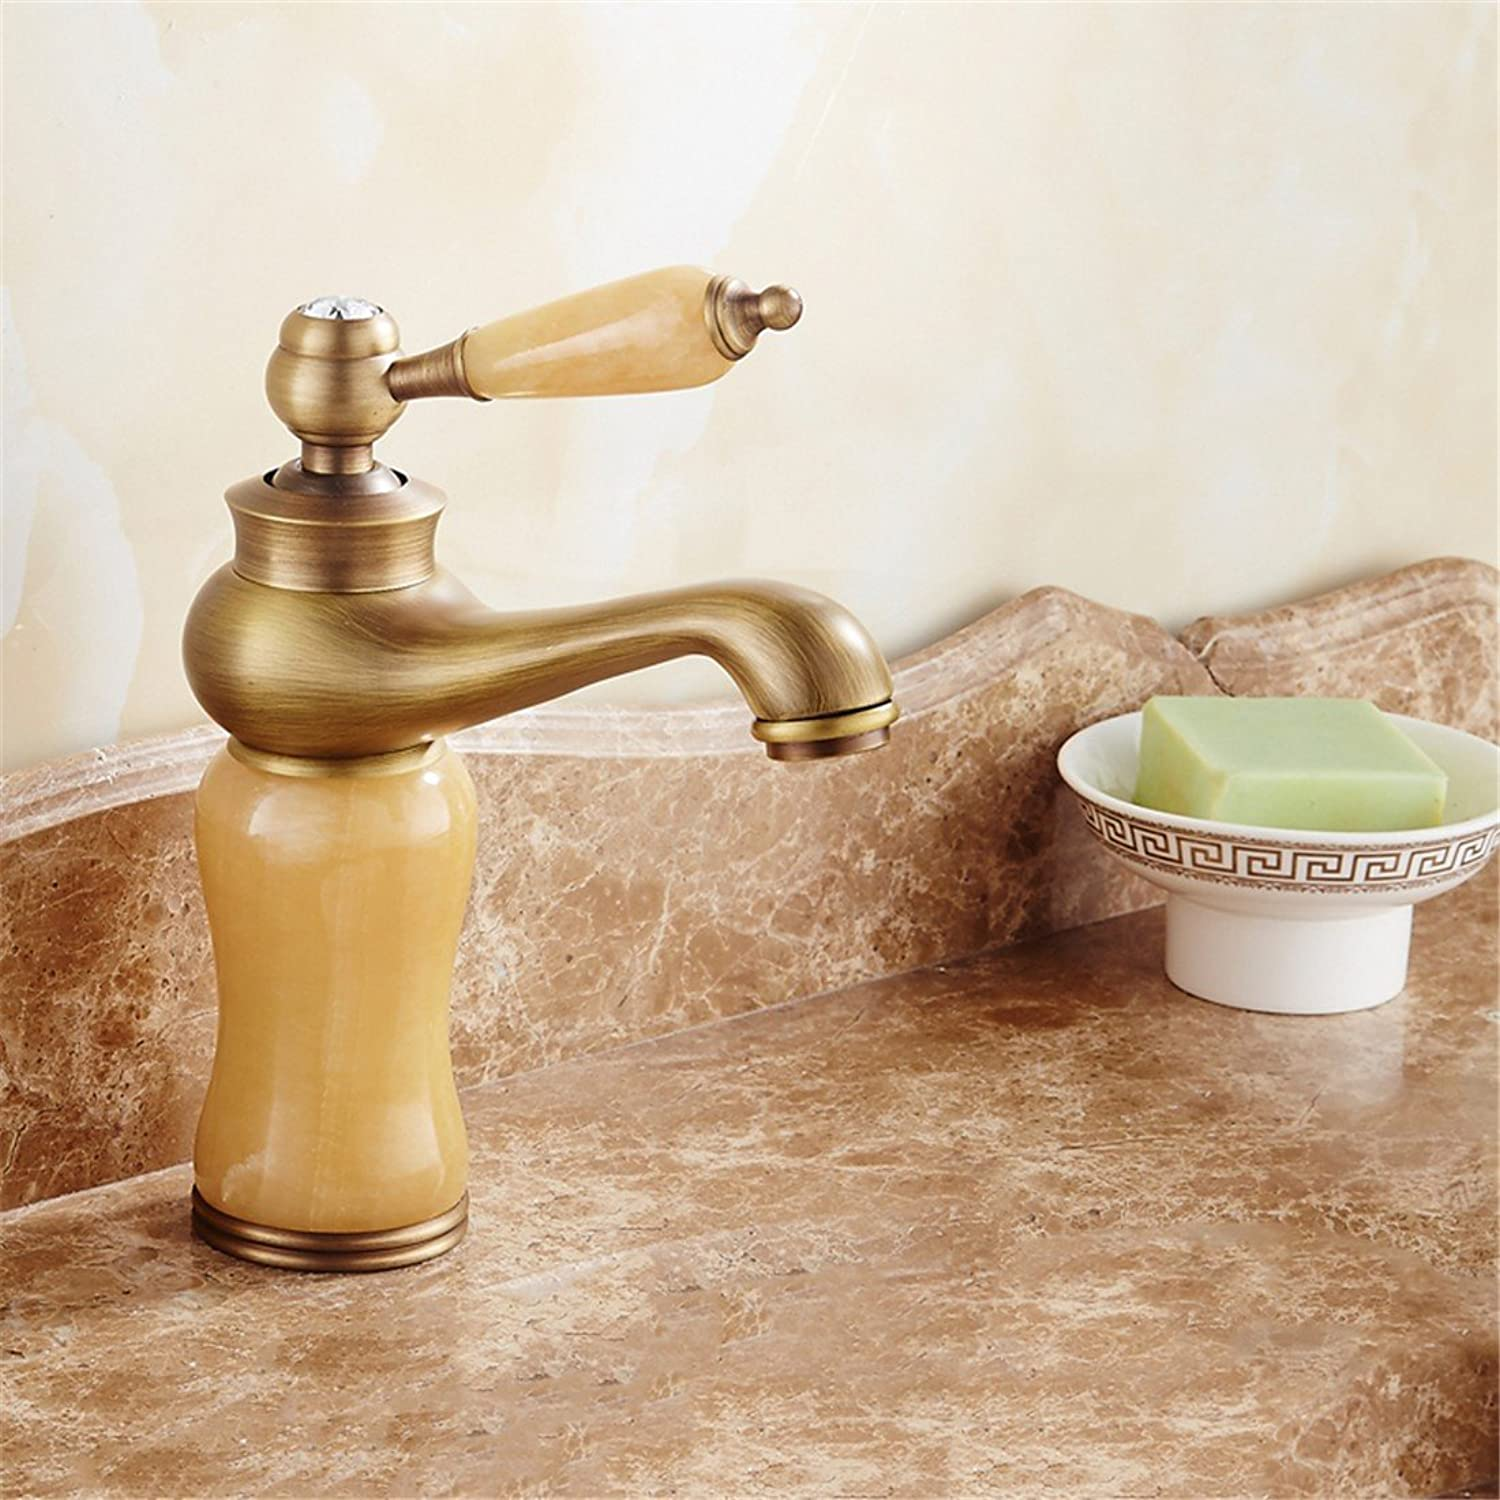 Fbict European Faucet gold Basin hot and Cold bluee Jade Marble Basin Faucet Copper washbasin Faucet, Classic Topaz for Kitchen Bathroom Faucet Bid Tap